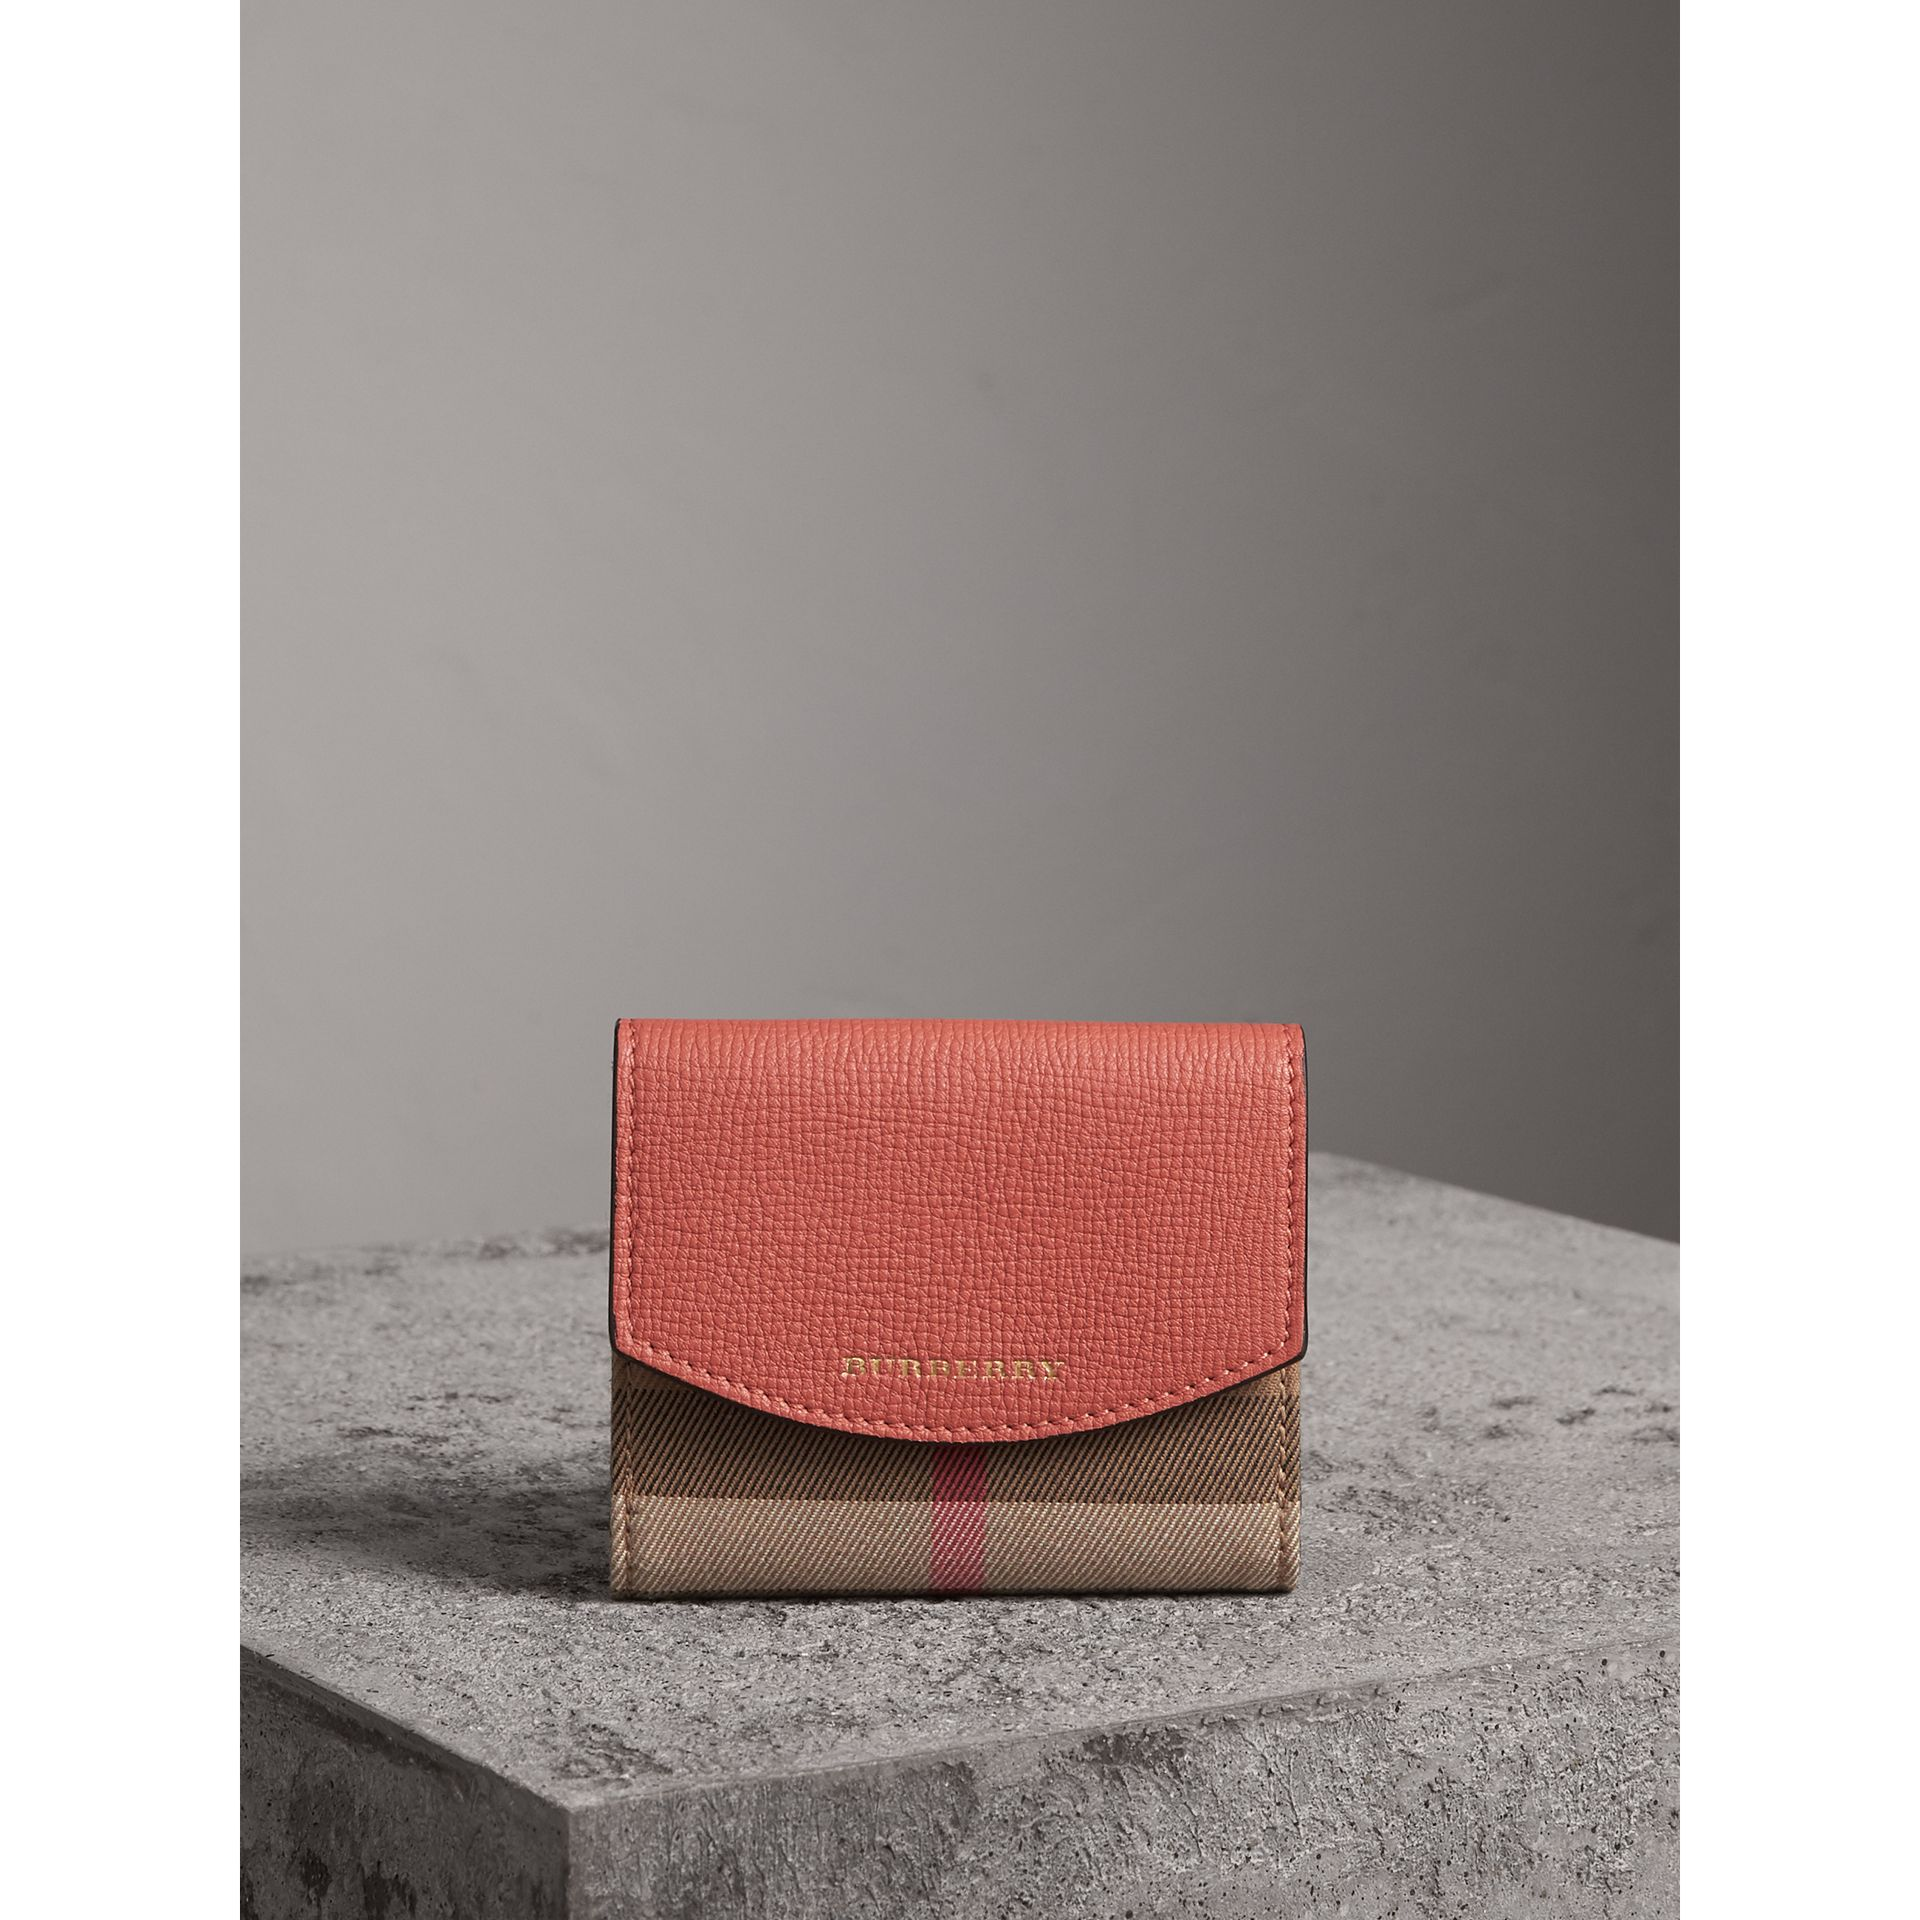 House Check and Leather Wallet in Cinnamon Red - Women | Burberry United States - gallery image 4